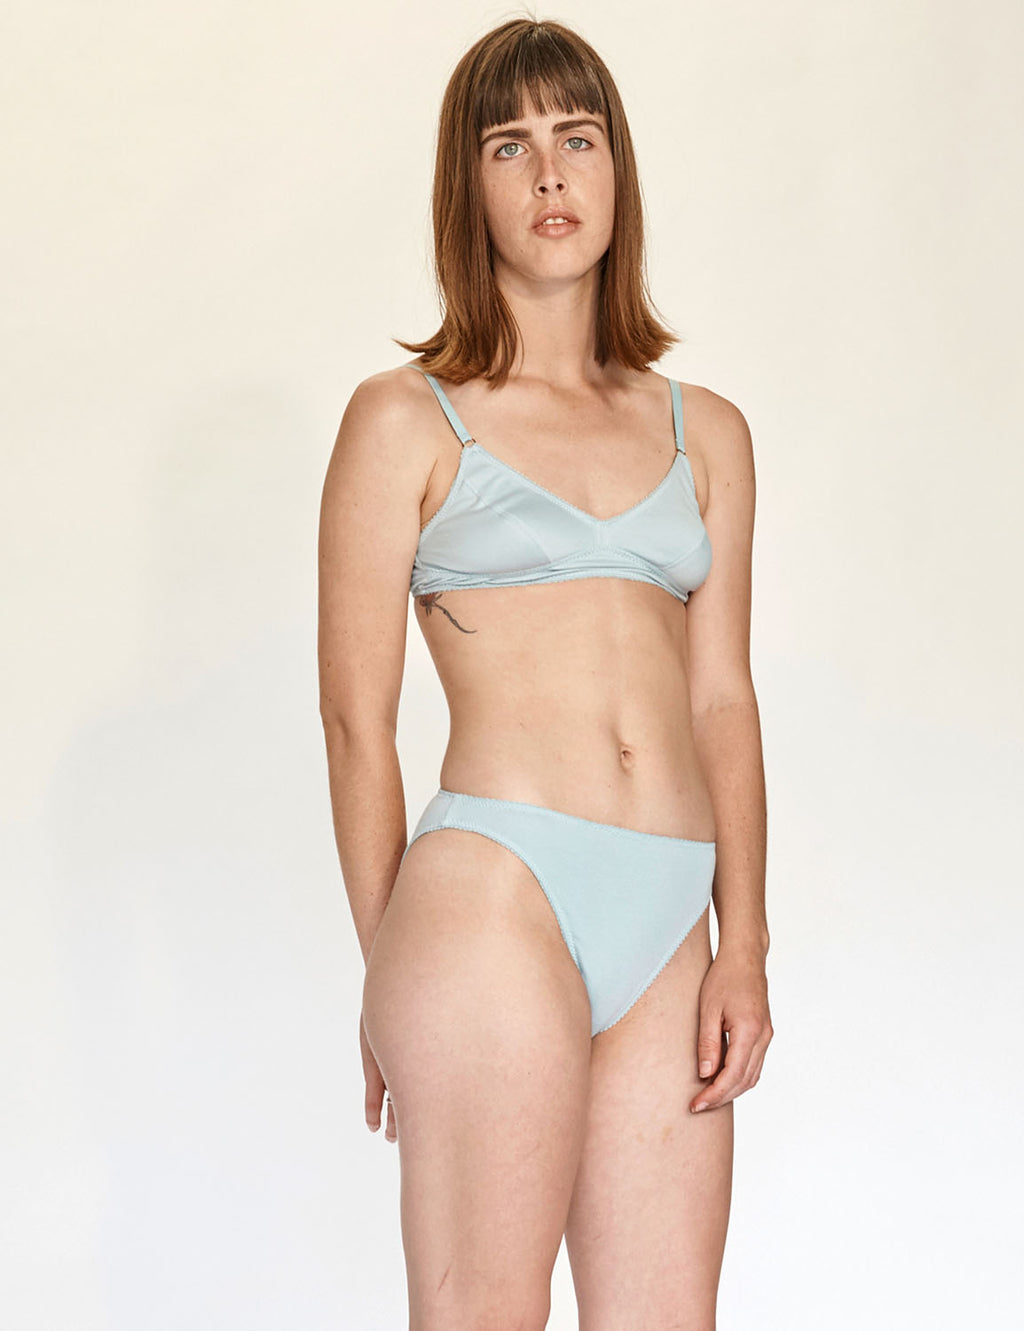 Euro Undies - Blue